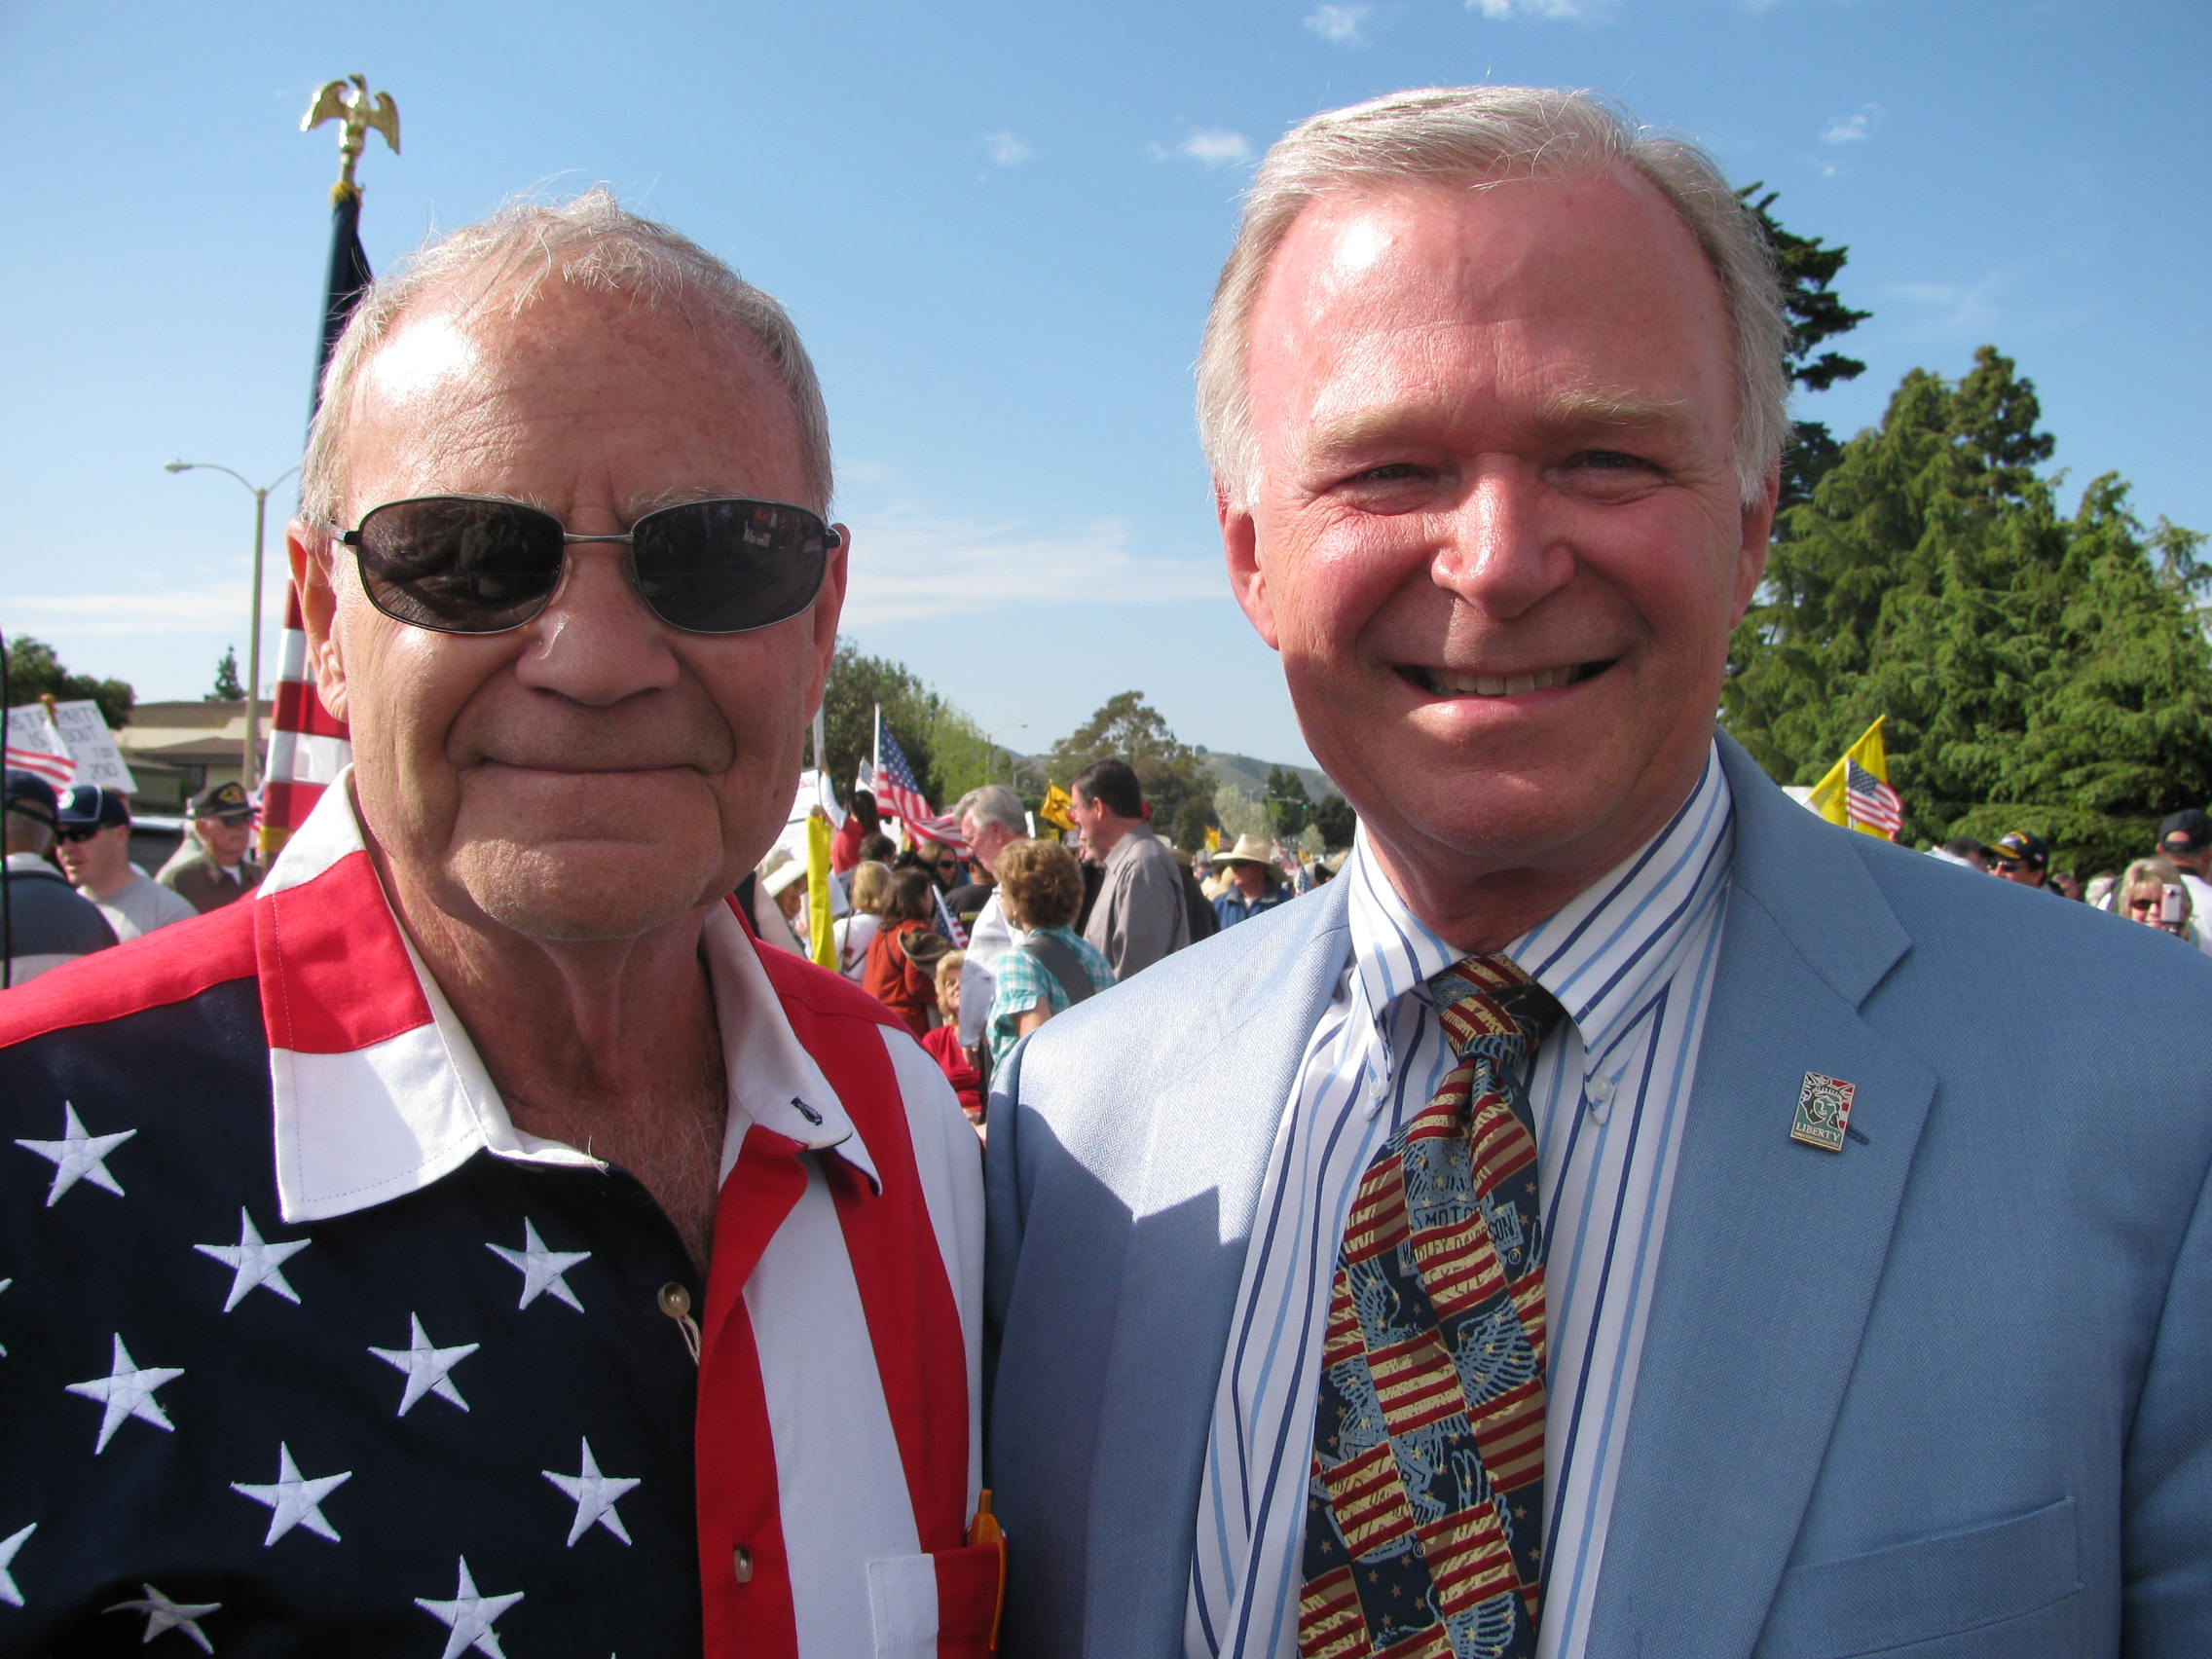 Jerry and speaker-columnist Terry Paulson